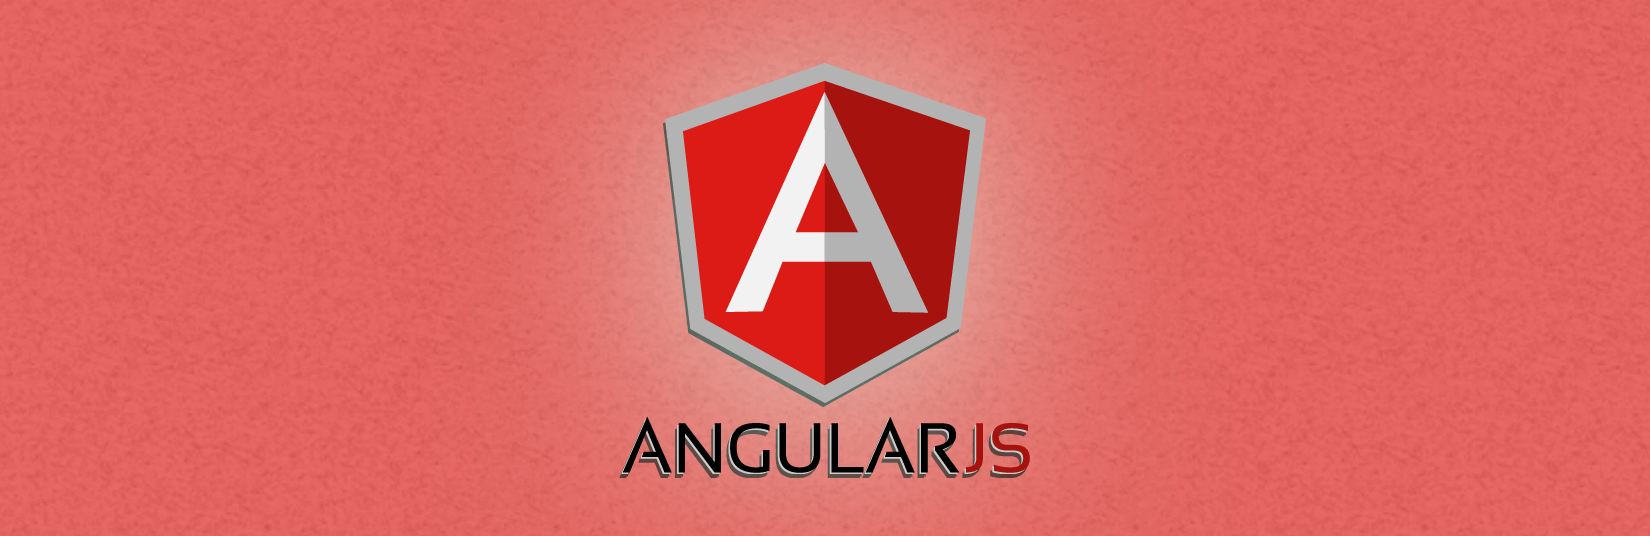 Making Web Applications with AngularJS